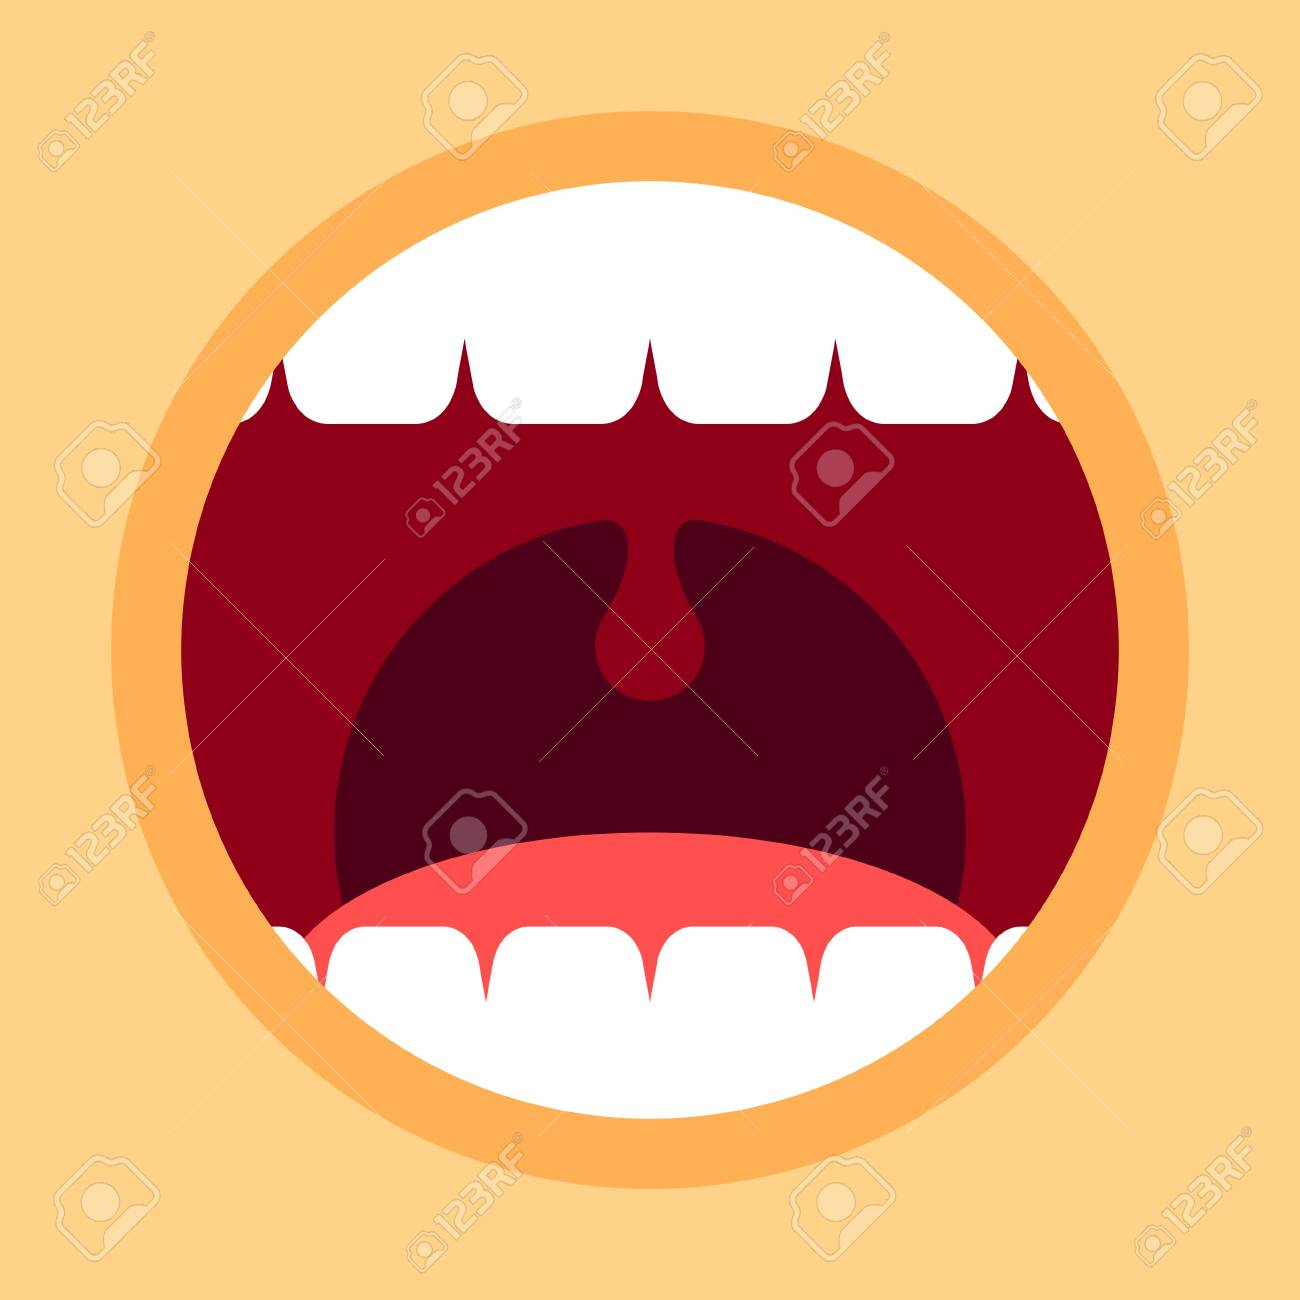 open mouth with teeth and tongue screaming mouth cartoon in rh 123rf com open mouth cartoon drawing open mouth cartoon drawing